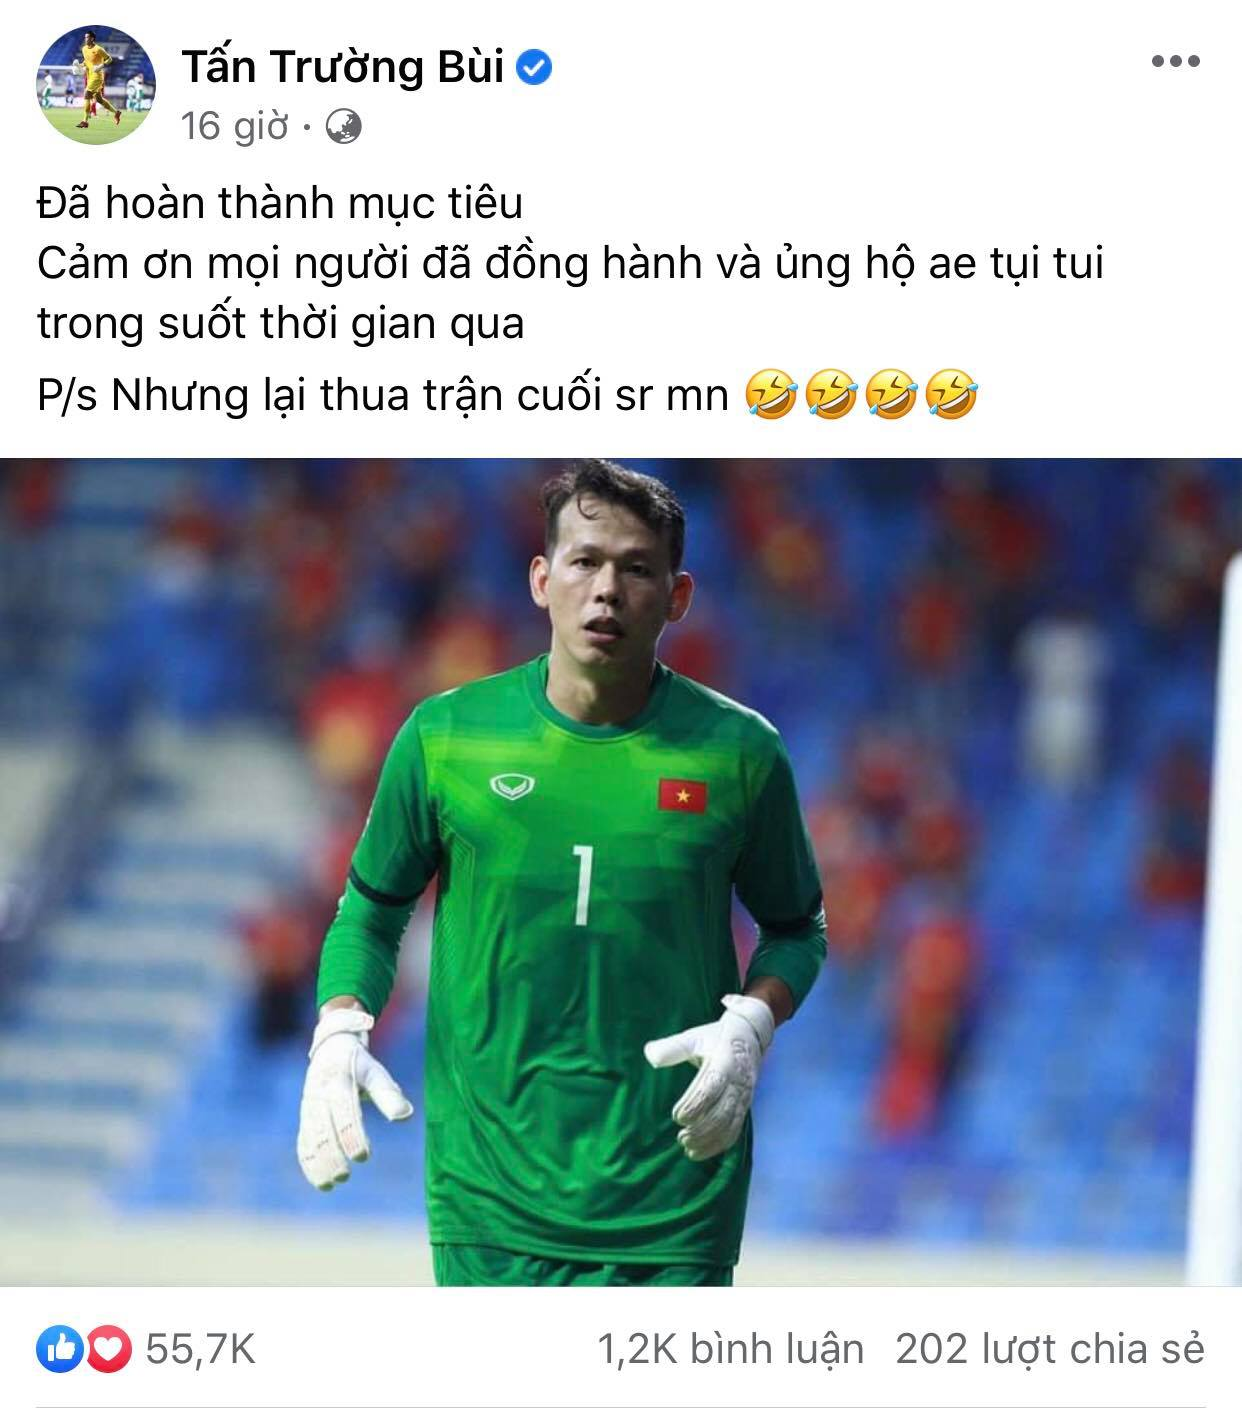 Goalkeeper Tan Truong performed excellently in this round, but he still apologized to the fans for losing the last match.